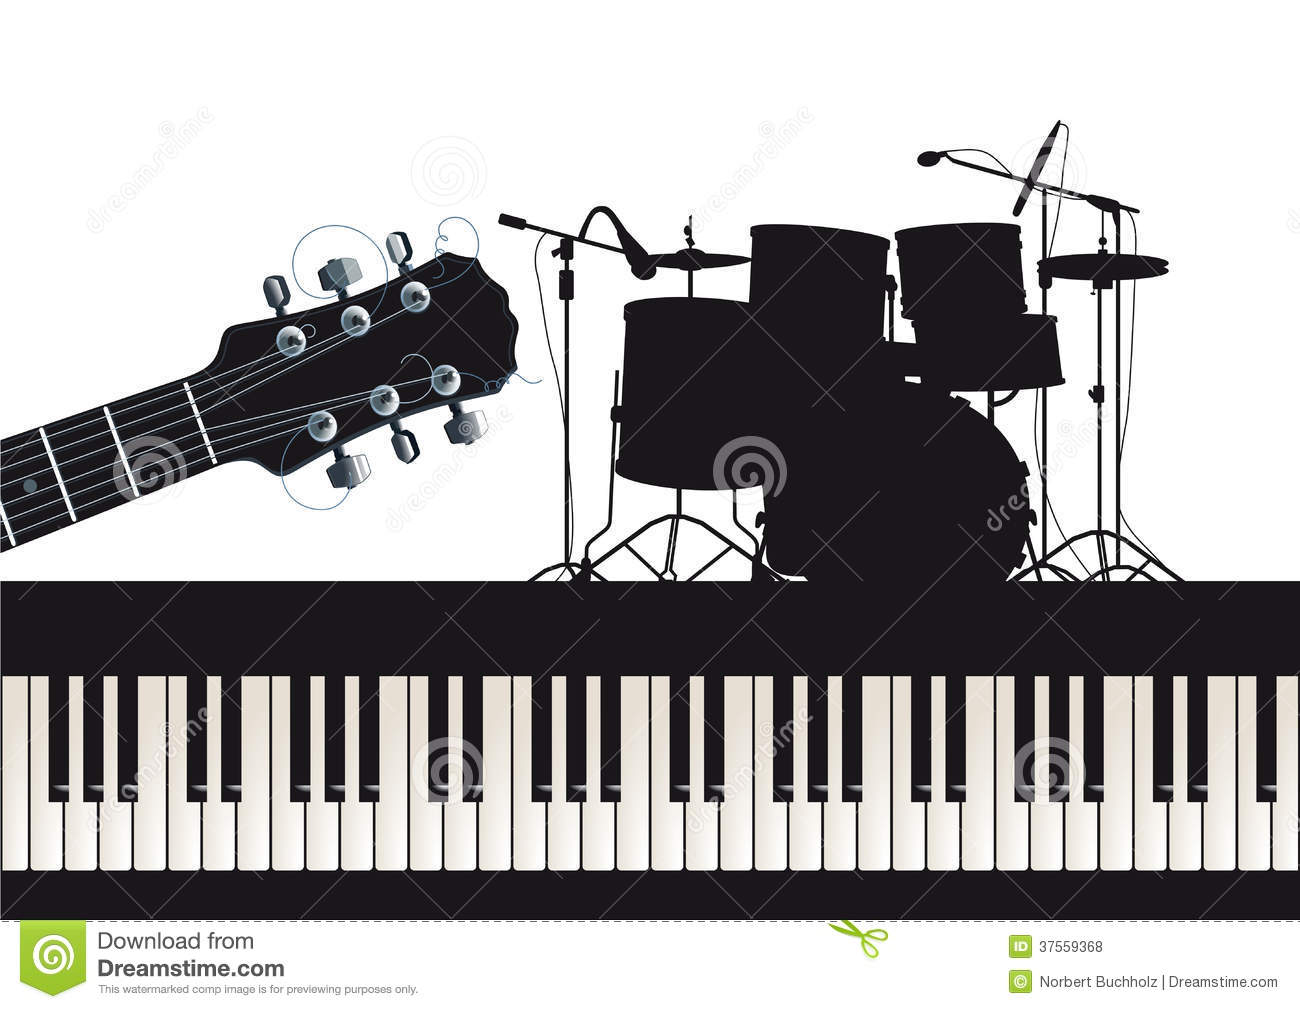 """Poetry: """"Piano and Drums"""" by Gabriel Okara"""